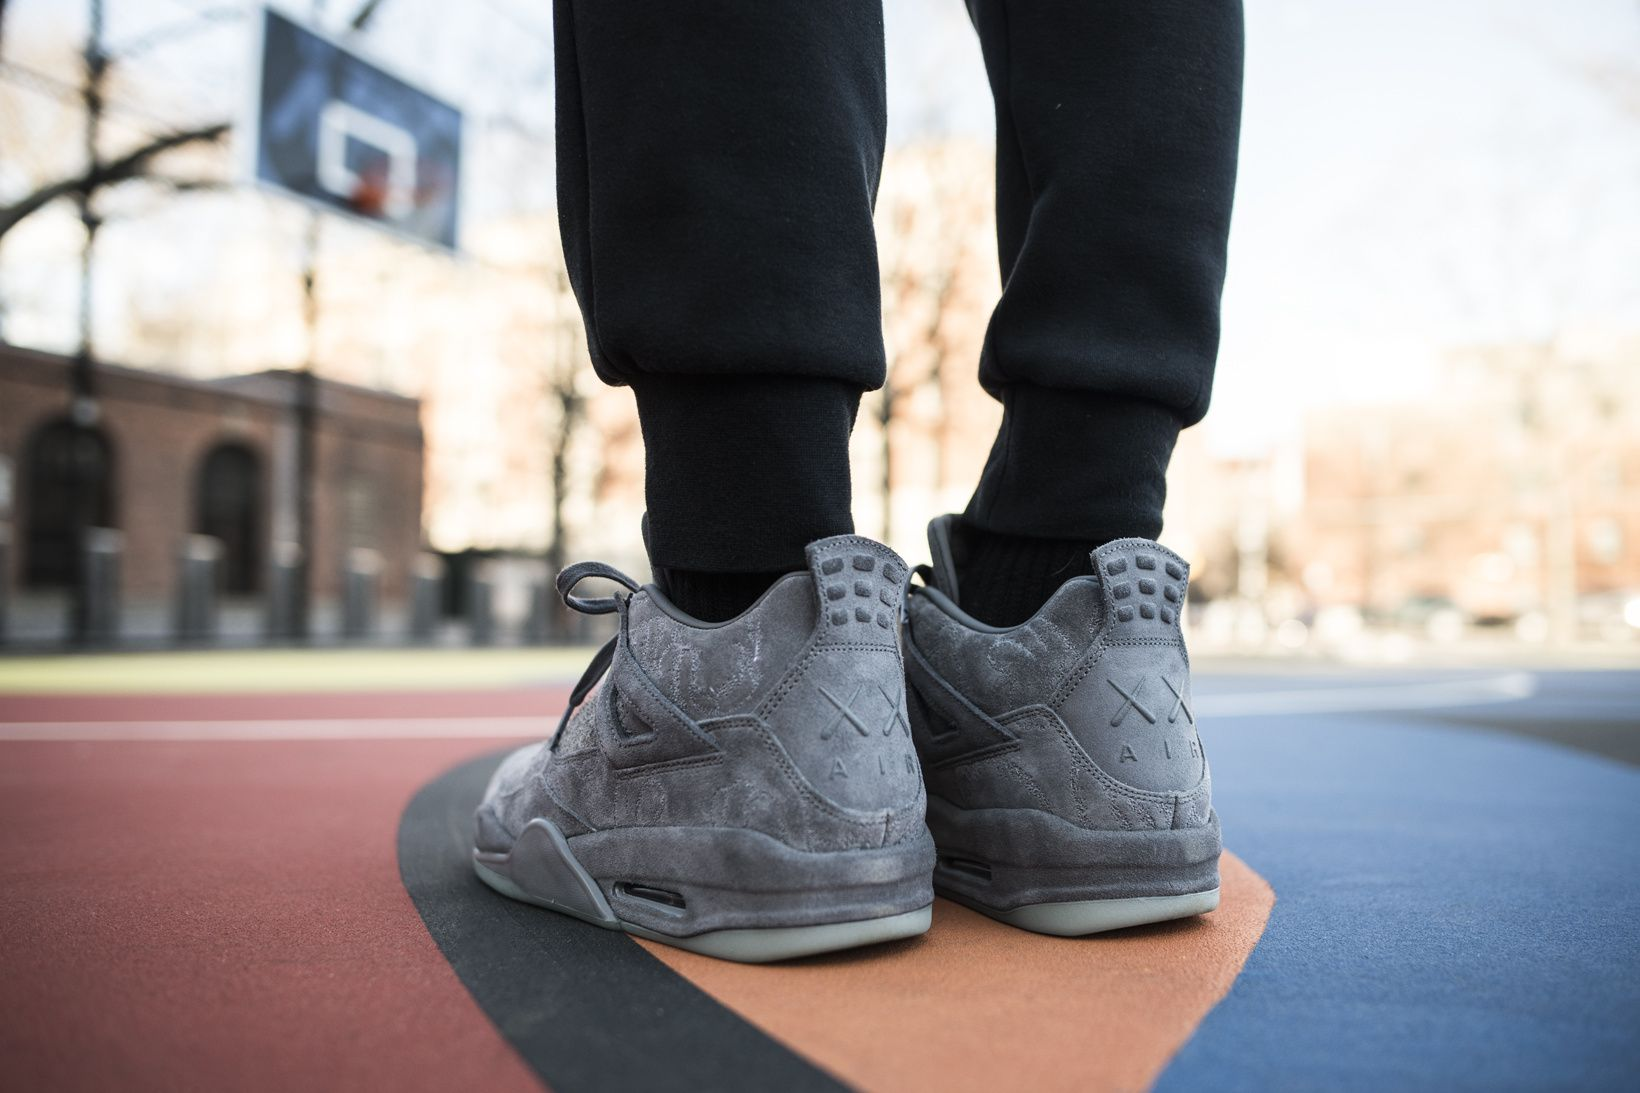 7b0849f27a3 EXCLUSIVE: Here's Your Best Look Yet at the KAWS x Air Jordan 4 in ...